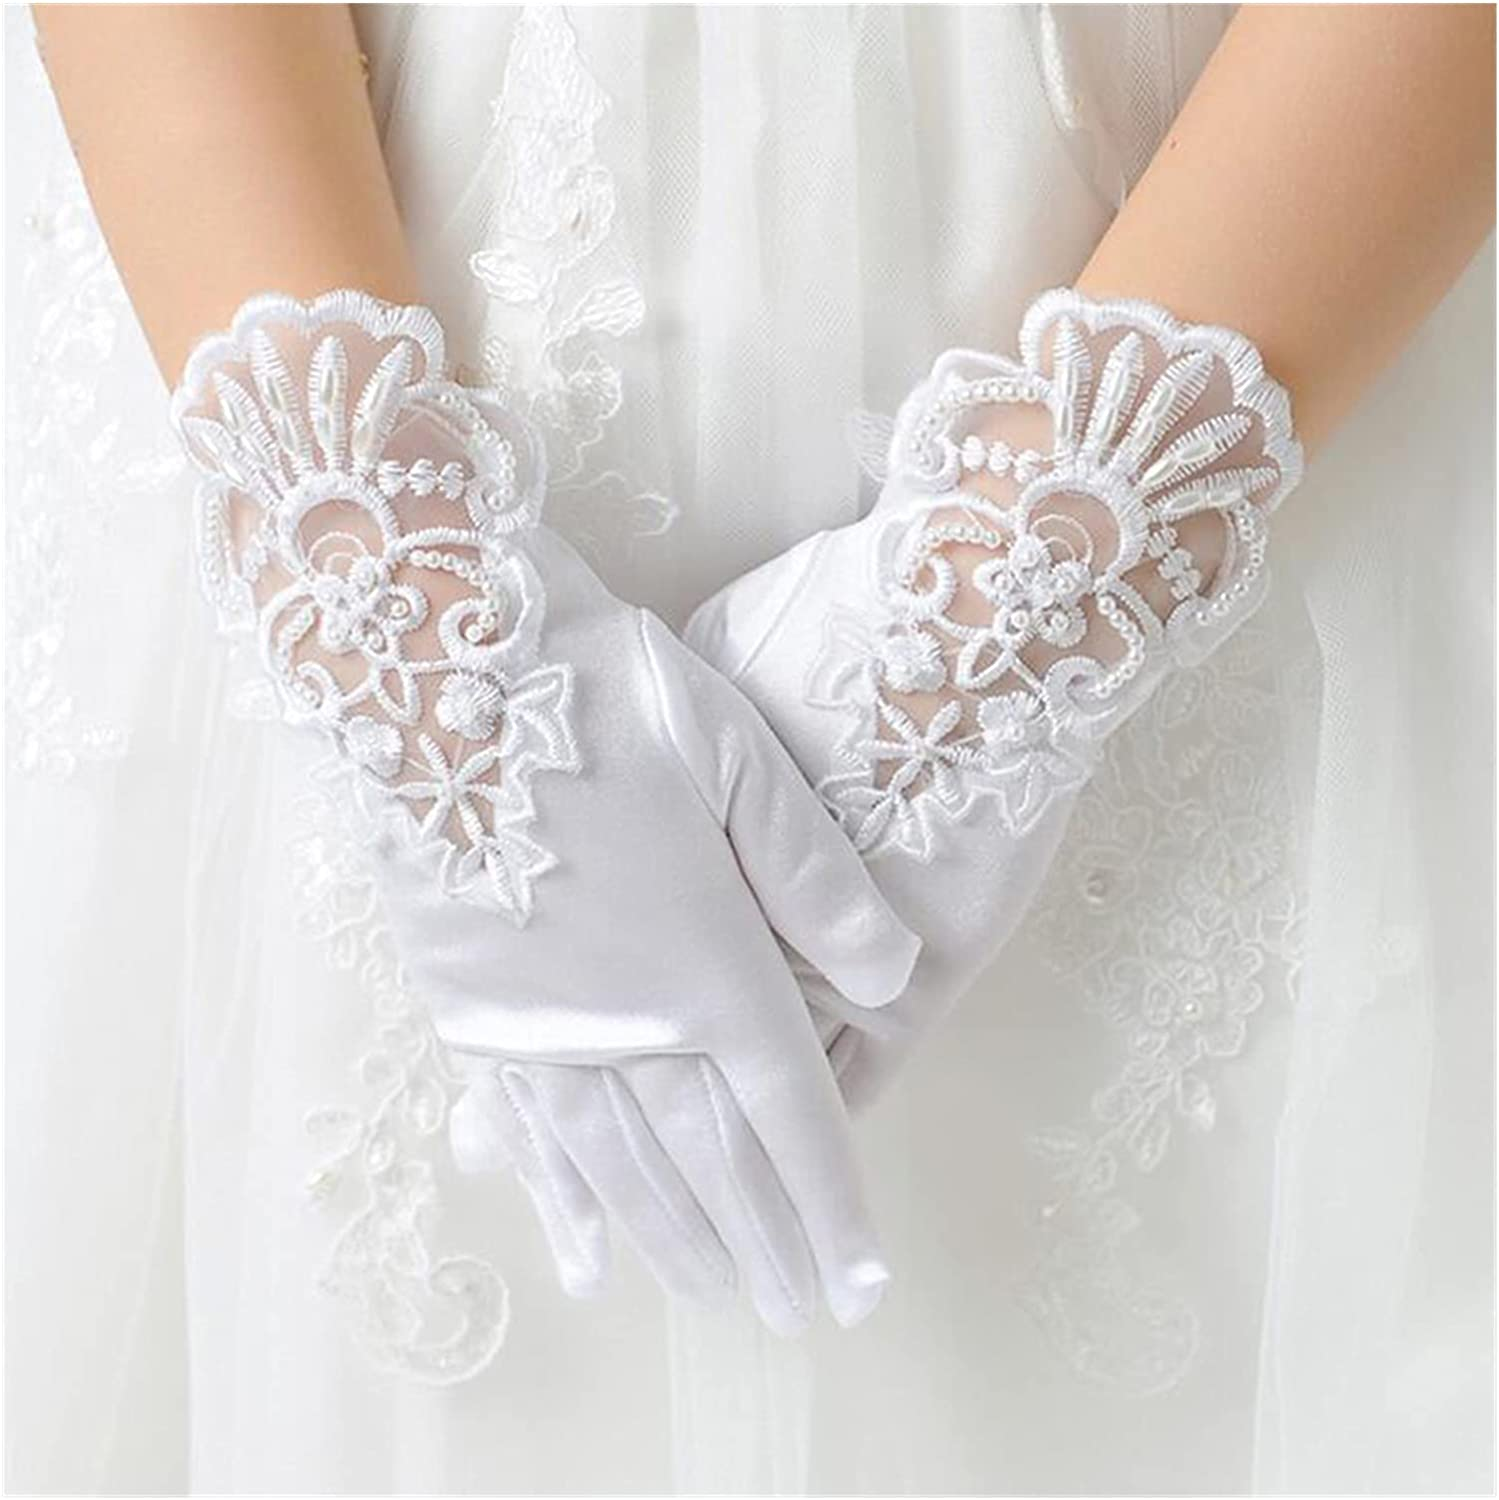 DMYONGLIAN Lace Gloves Kids Gift White Elastic Mesh Cloth Girls Party Formal Etiquette Gloves Pearl Short Lace Bow Children Princess Dance Gloves Accessories (Color : White, Gloves Size : Large)